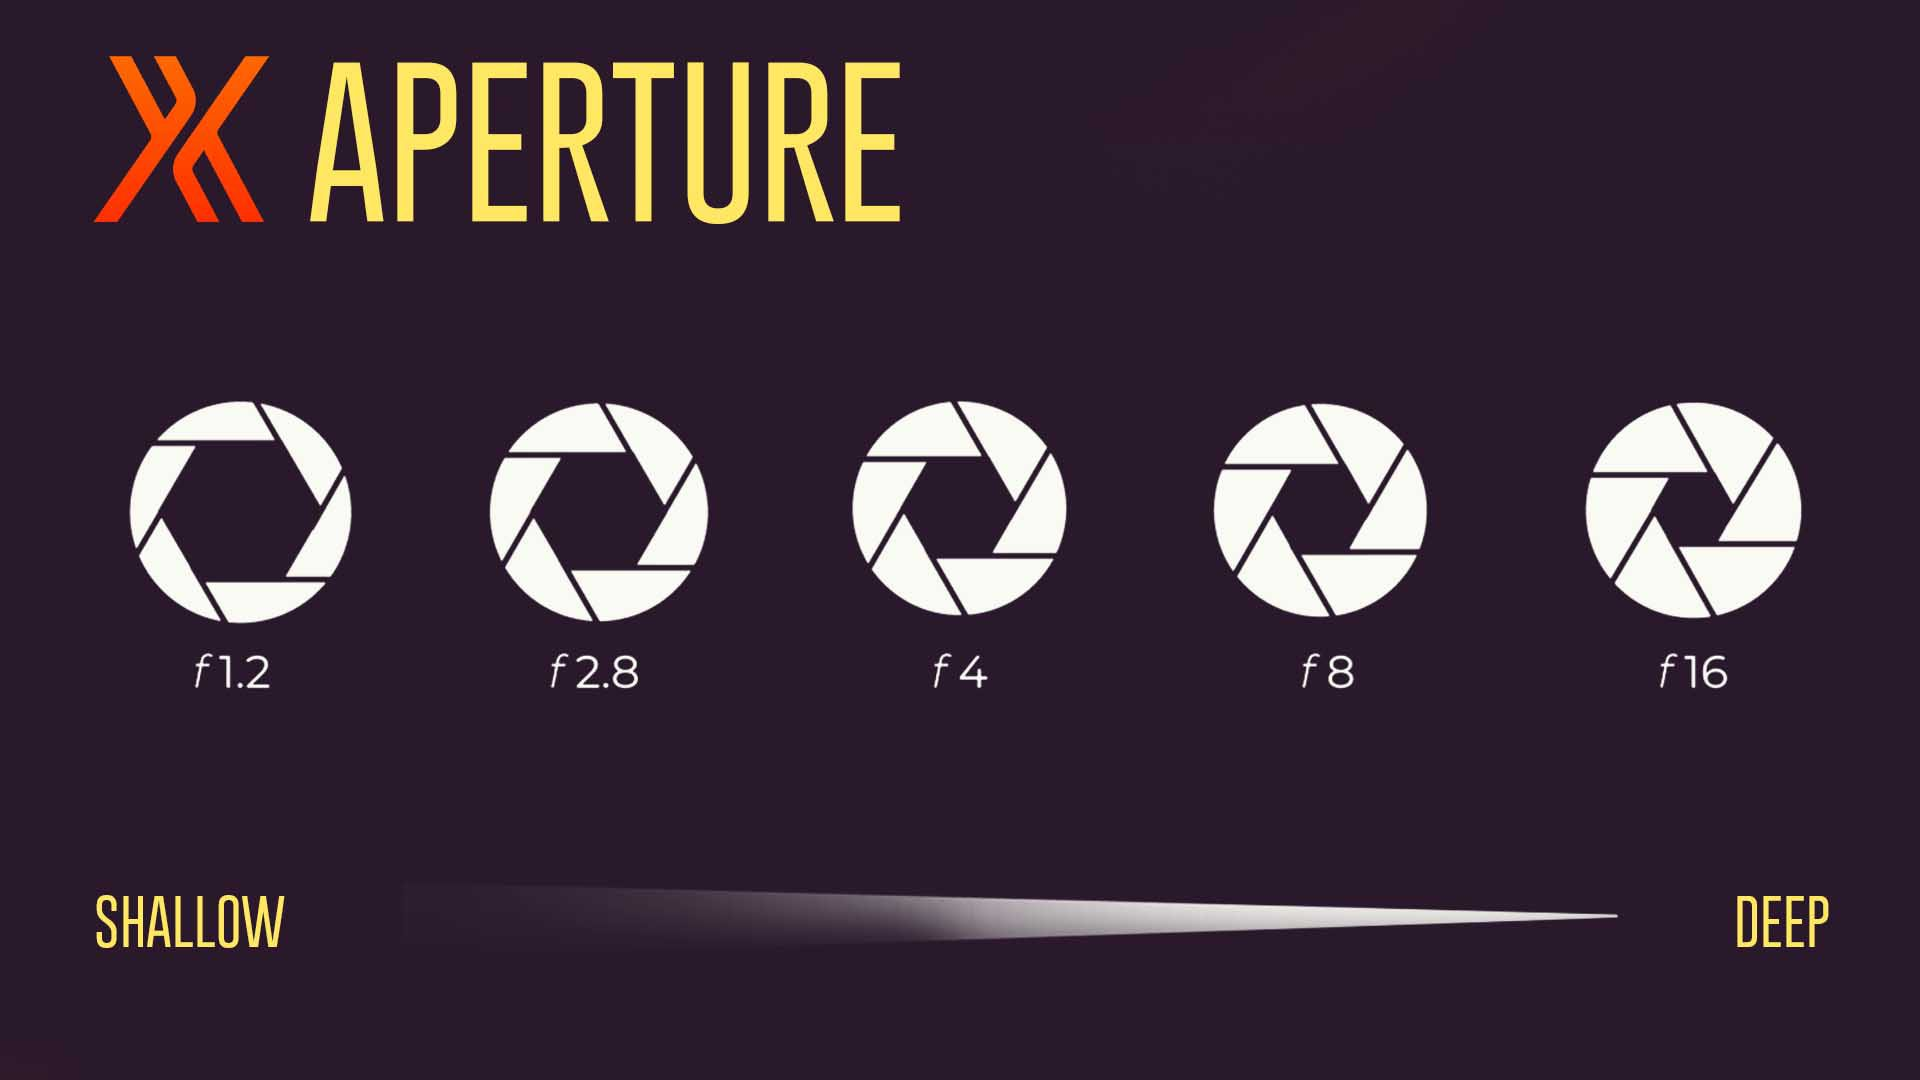 What is aperture infographic